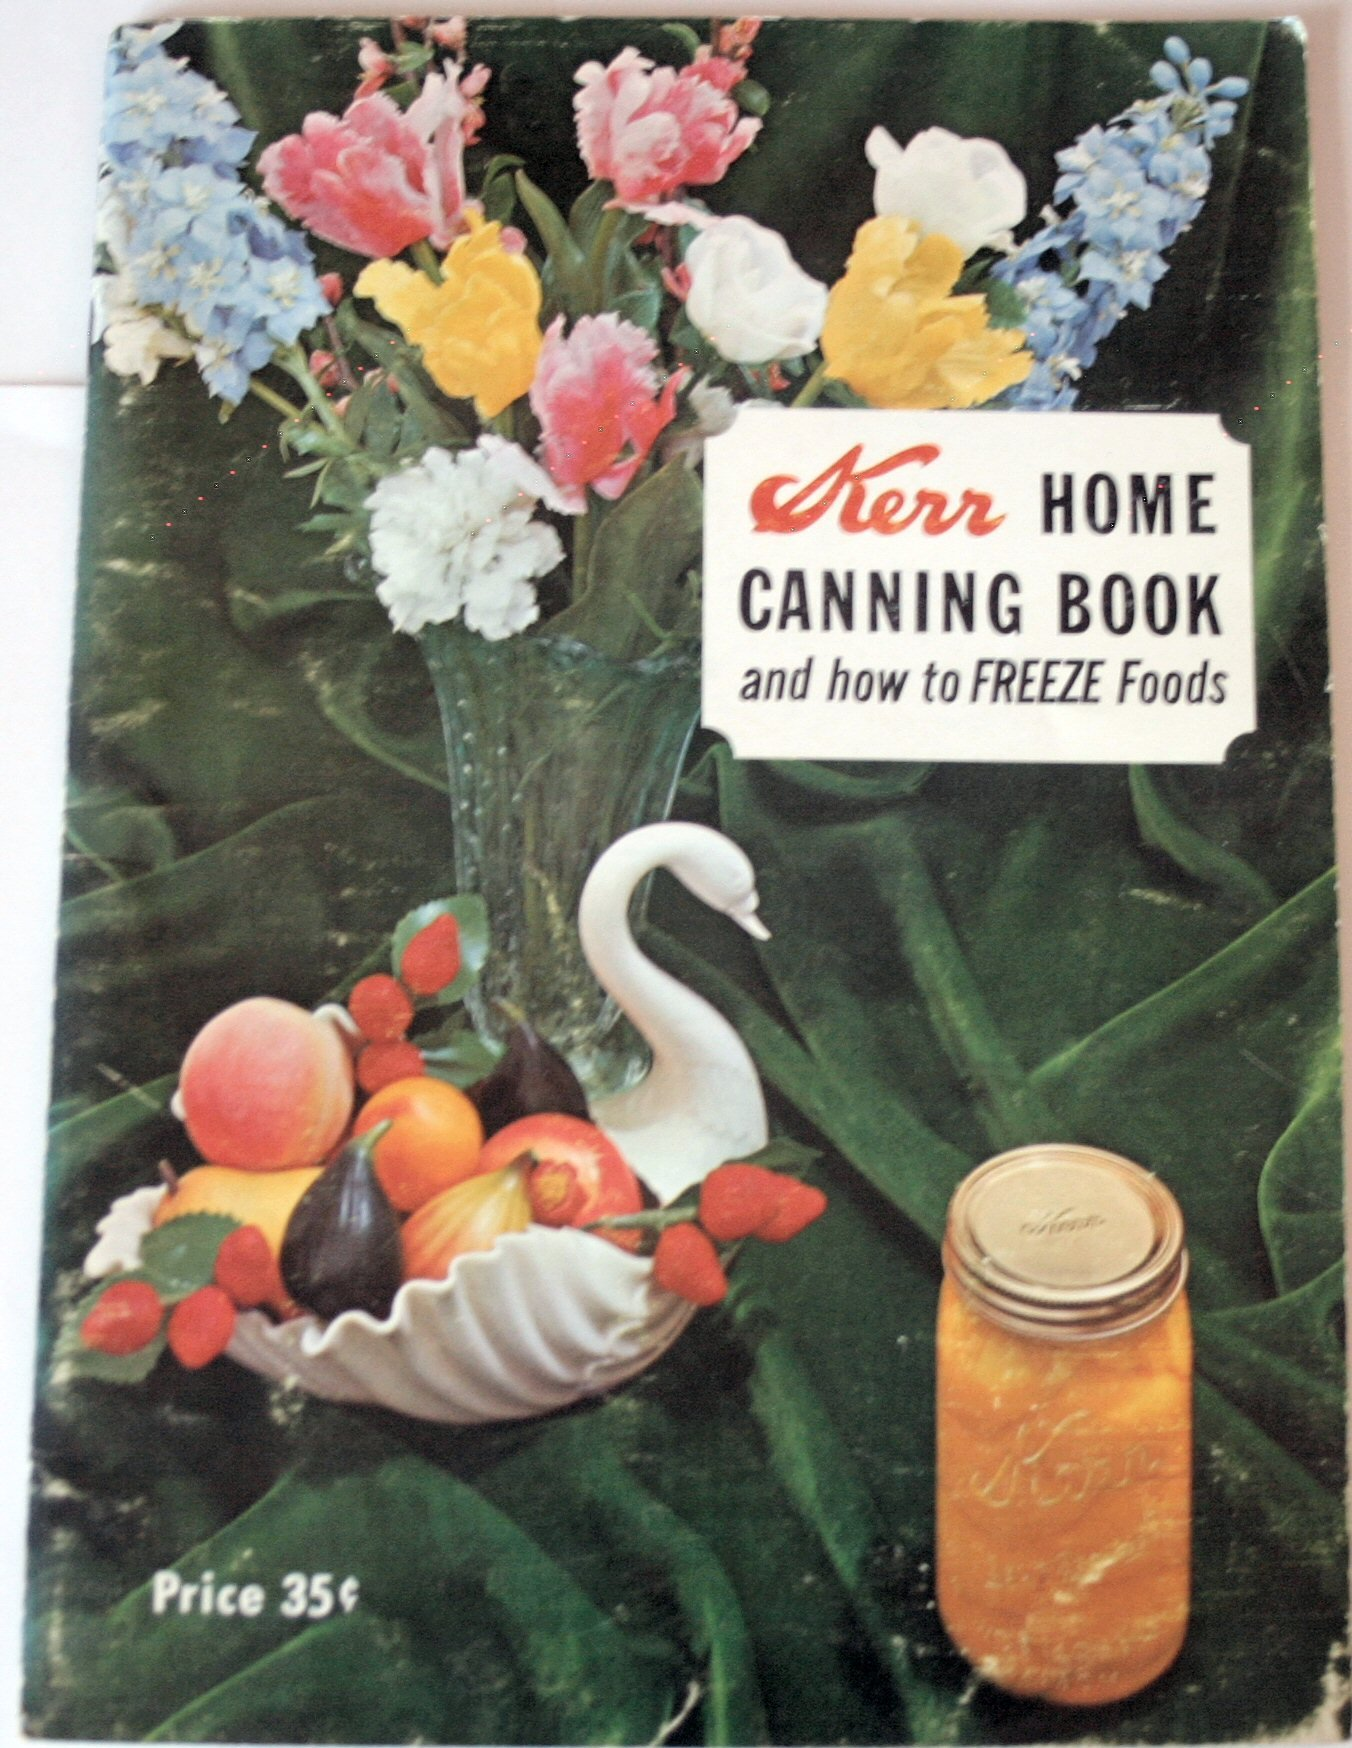 Kerr Home Canning Book and How to Freeze Foods, Kerr Glass Manufacturing Corporation